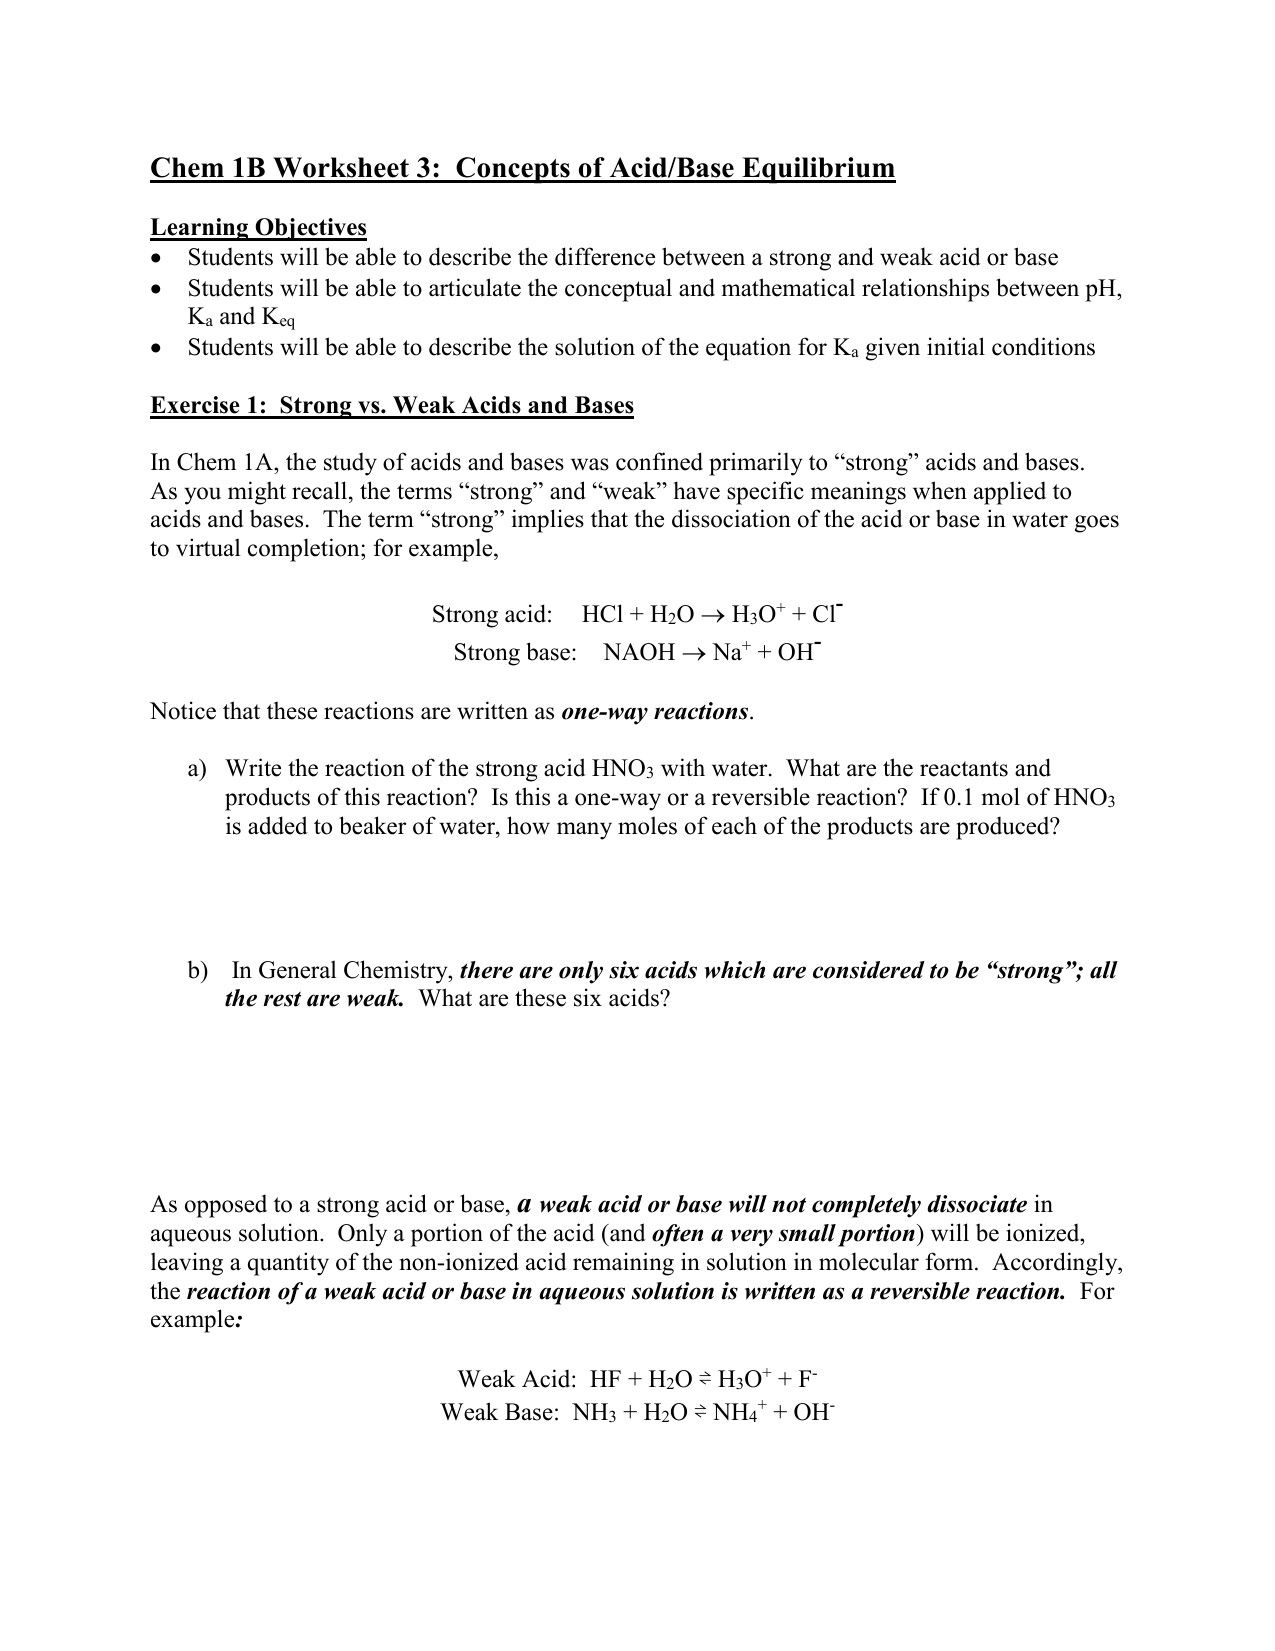 Classified Naming Acids and Bases Worksheet Answers